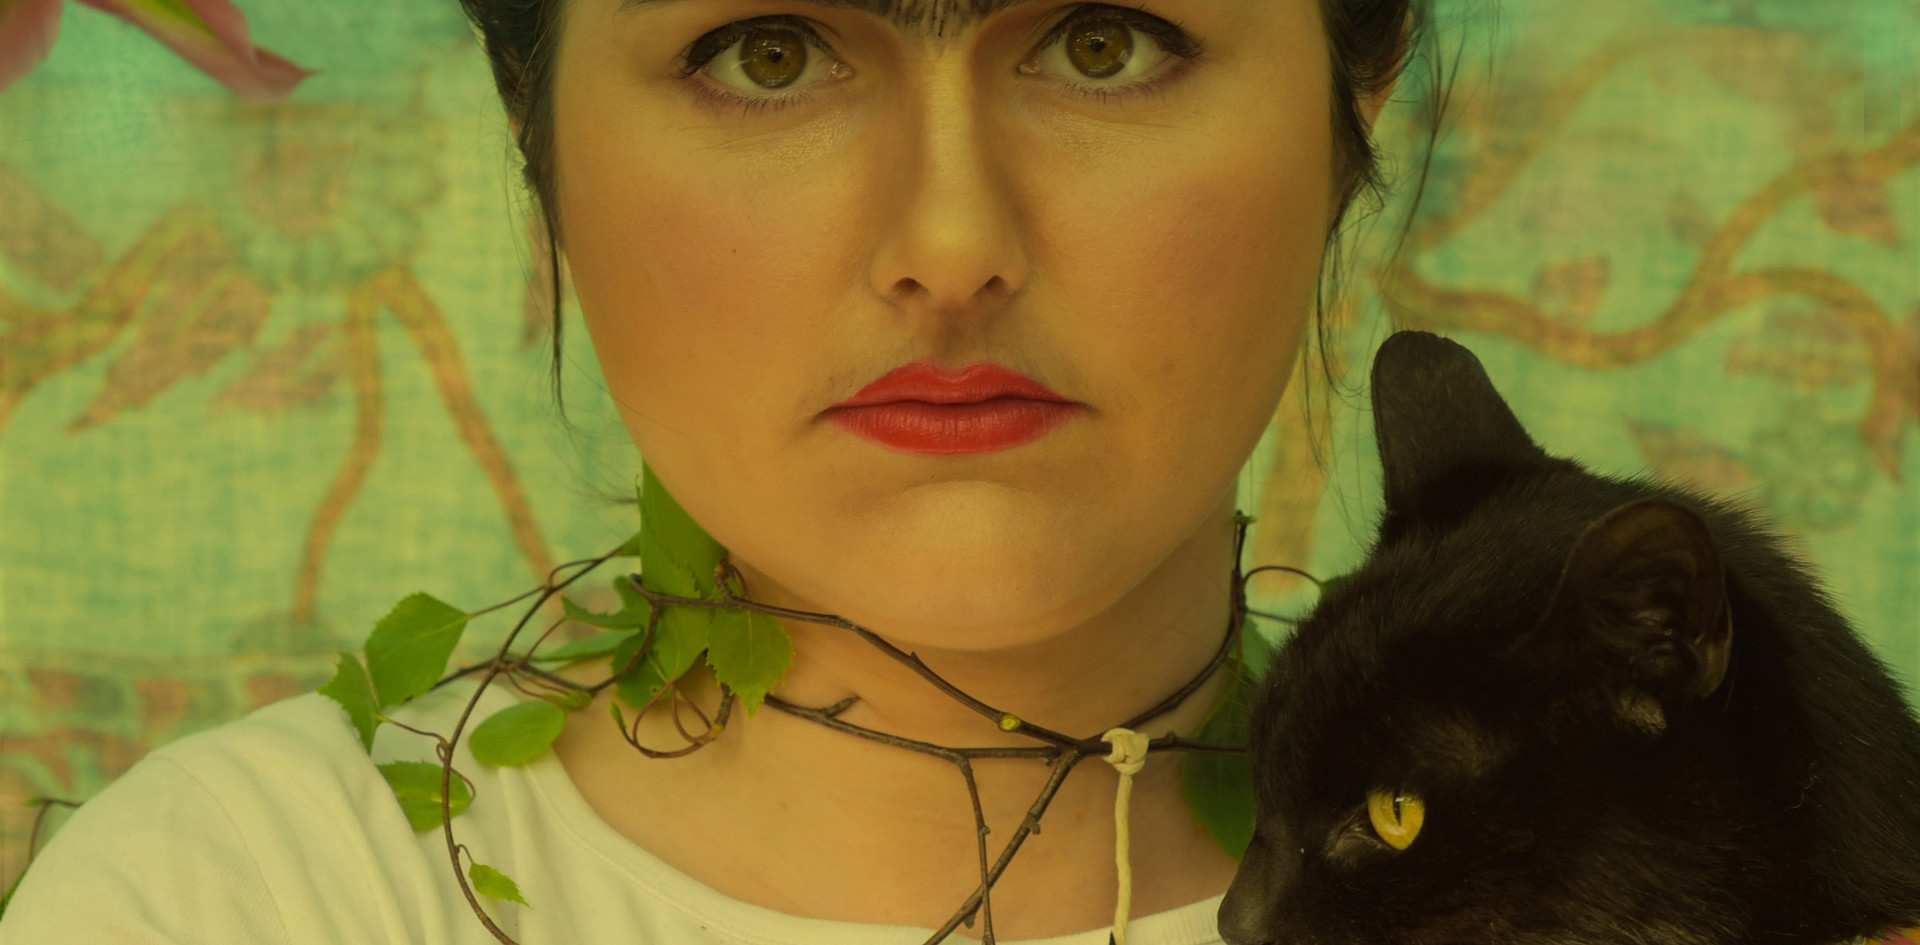 Self-Portrait with Thorn Neclace and Hummingbird